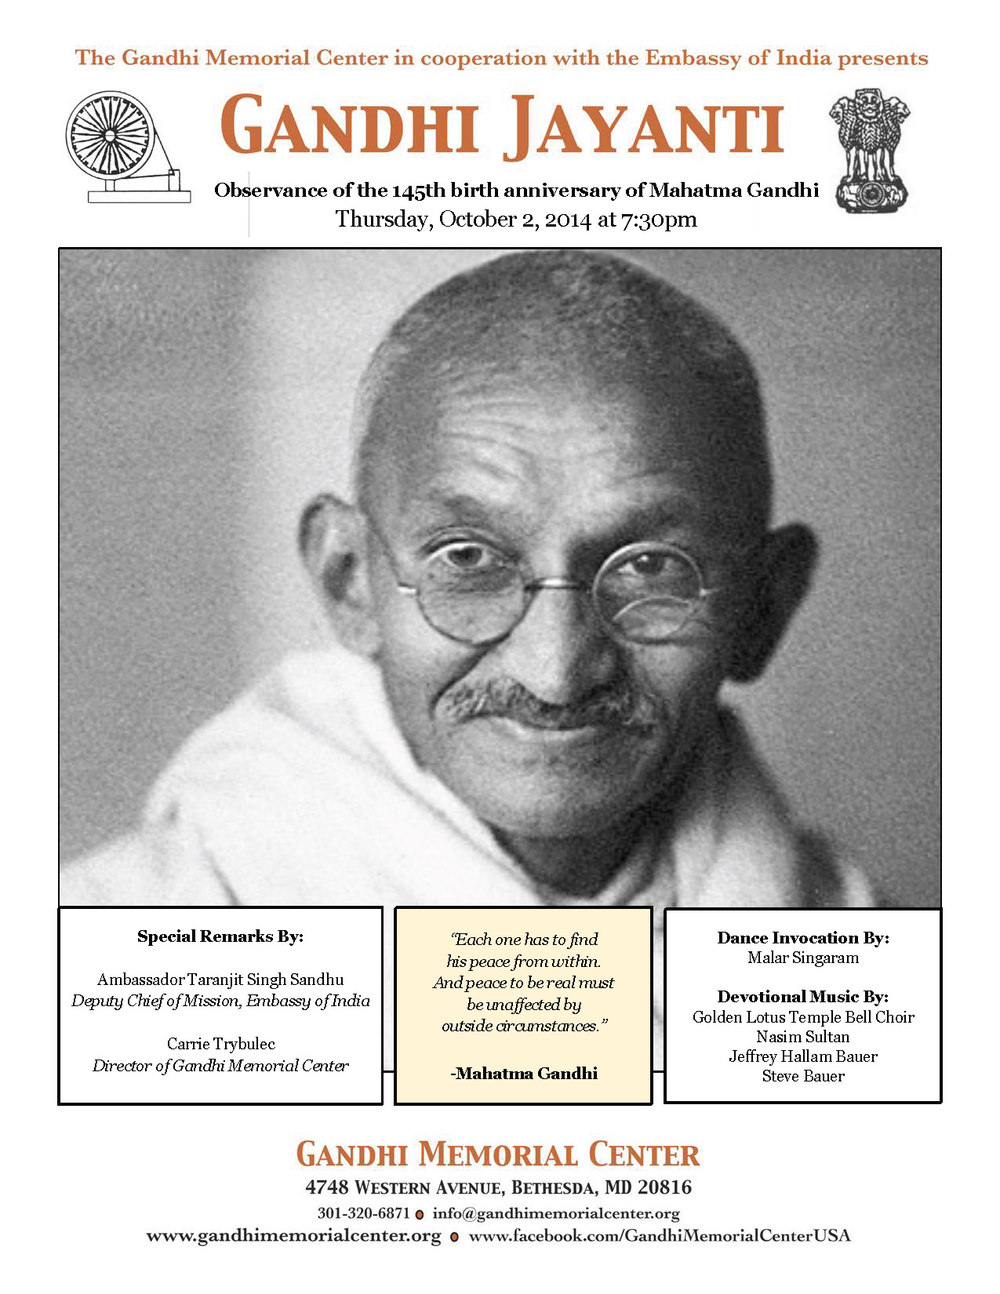 essay writing on gandhi jayanti Gandhi jayanti essay in malayalam, get paid homework, homework help online ontario by in uncategorized march 14, 2018 principles of essay writing to do today.